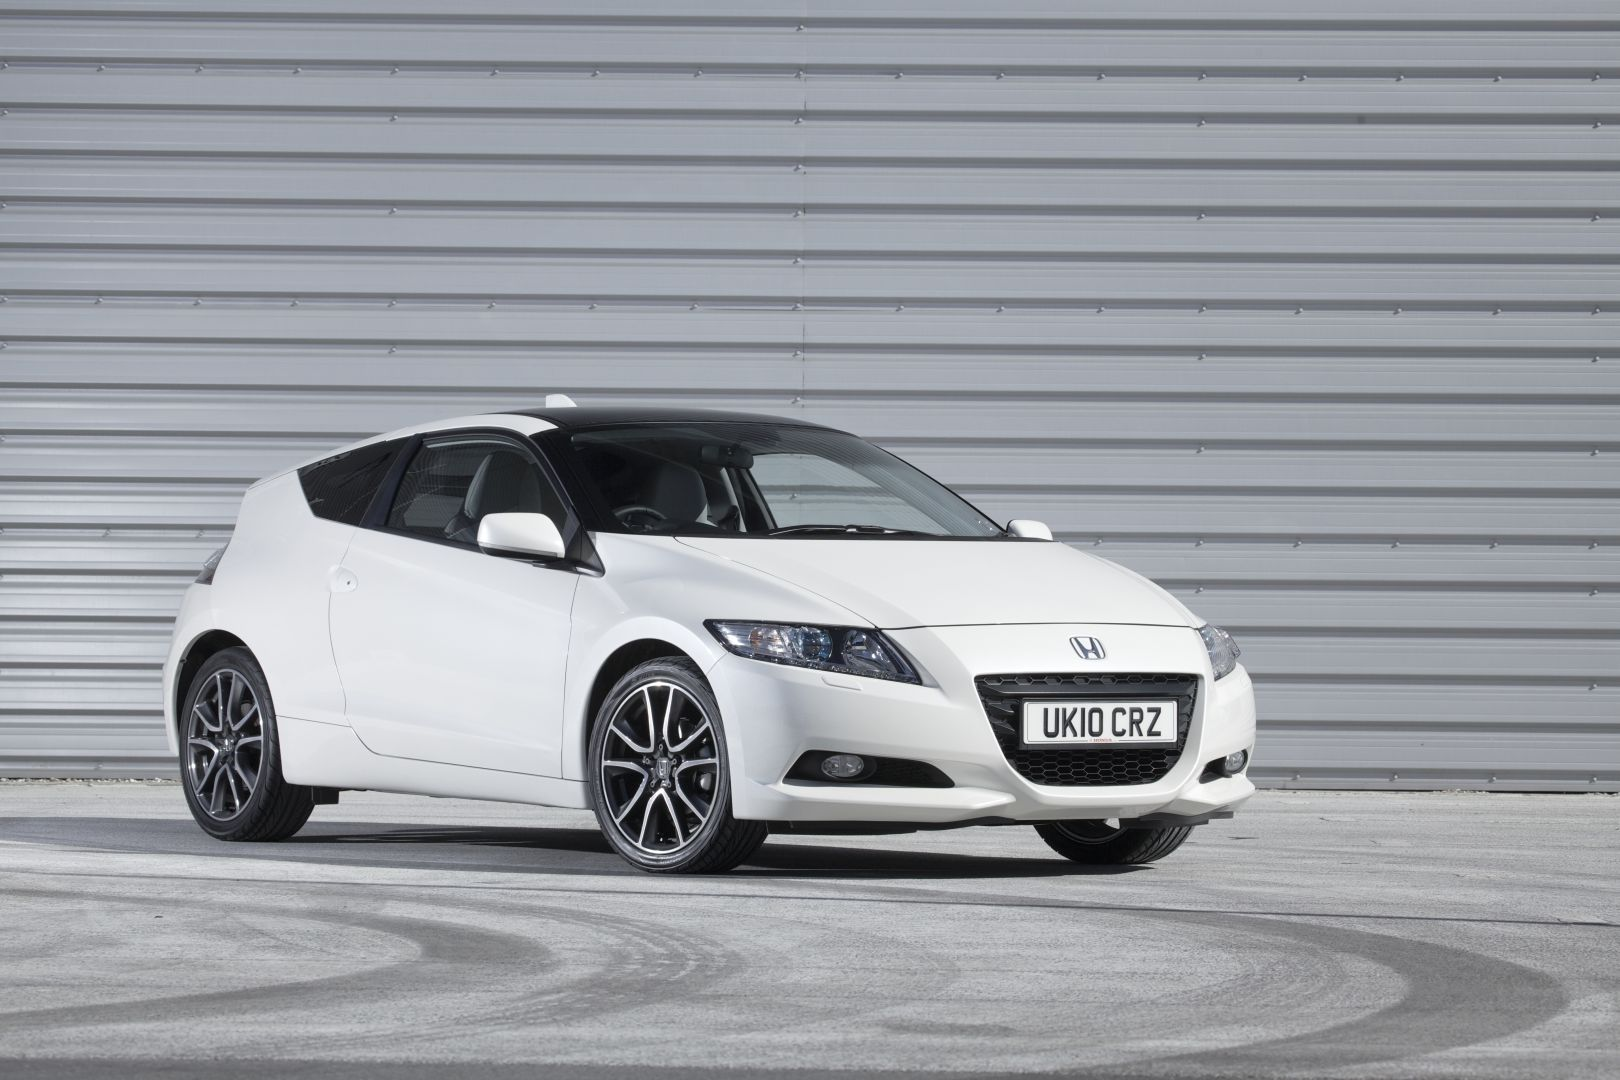 honda cr z specs photos 2010 2011 2012 2013 2014. Black Bedroom Furniture Sets. Home Design Ideas